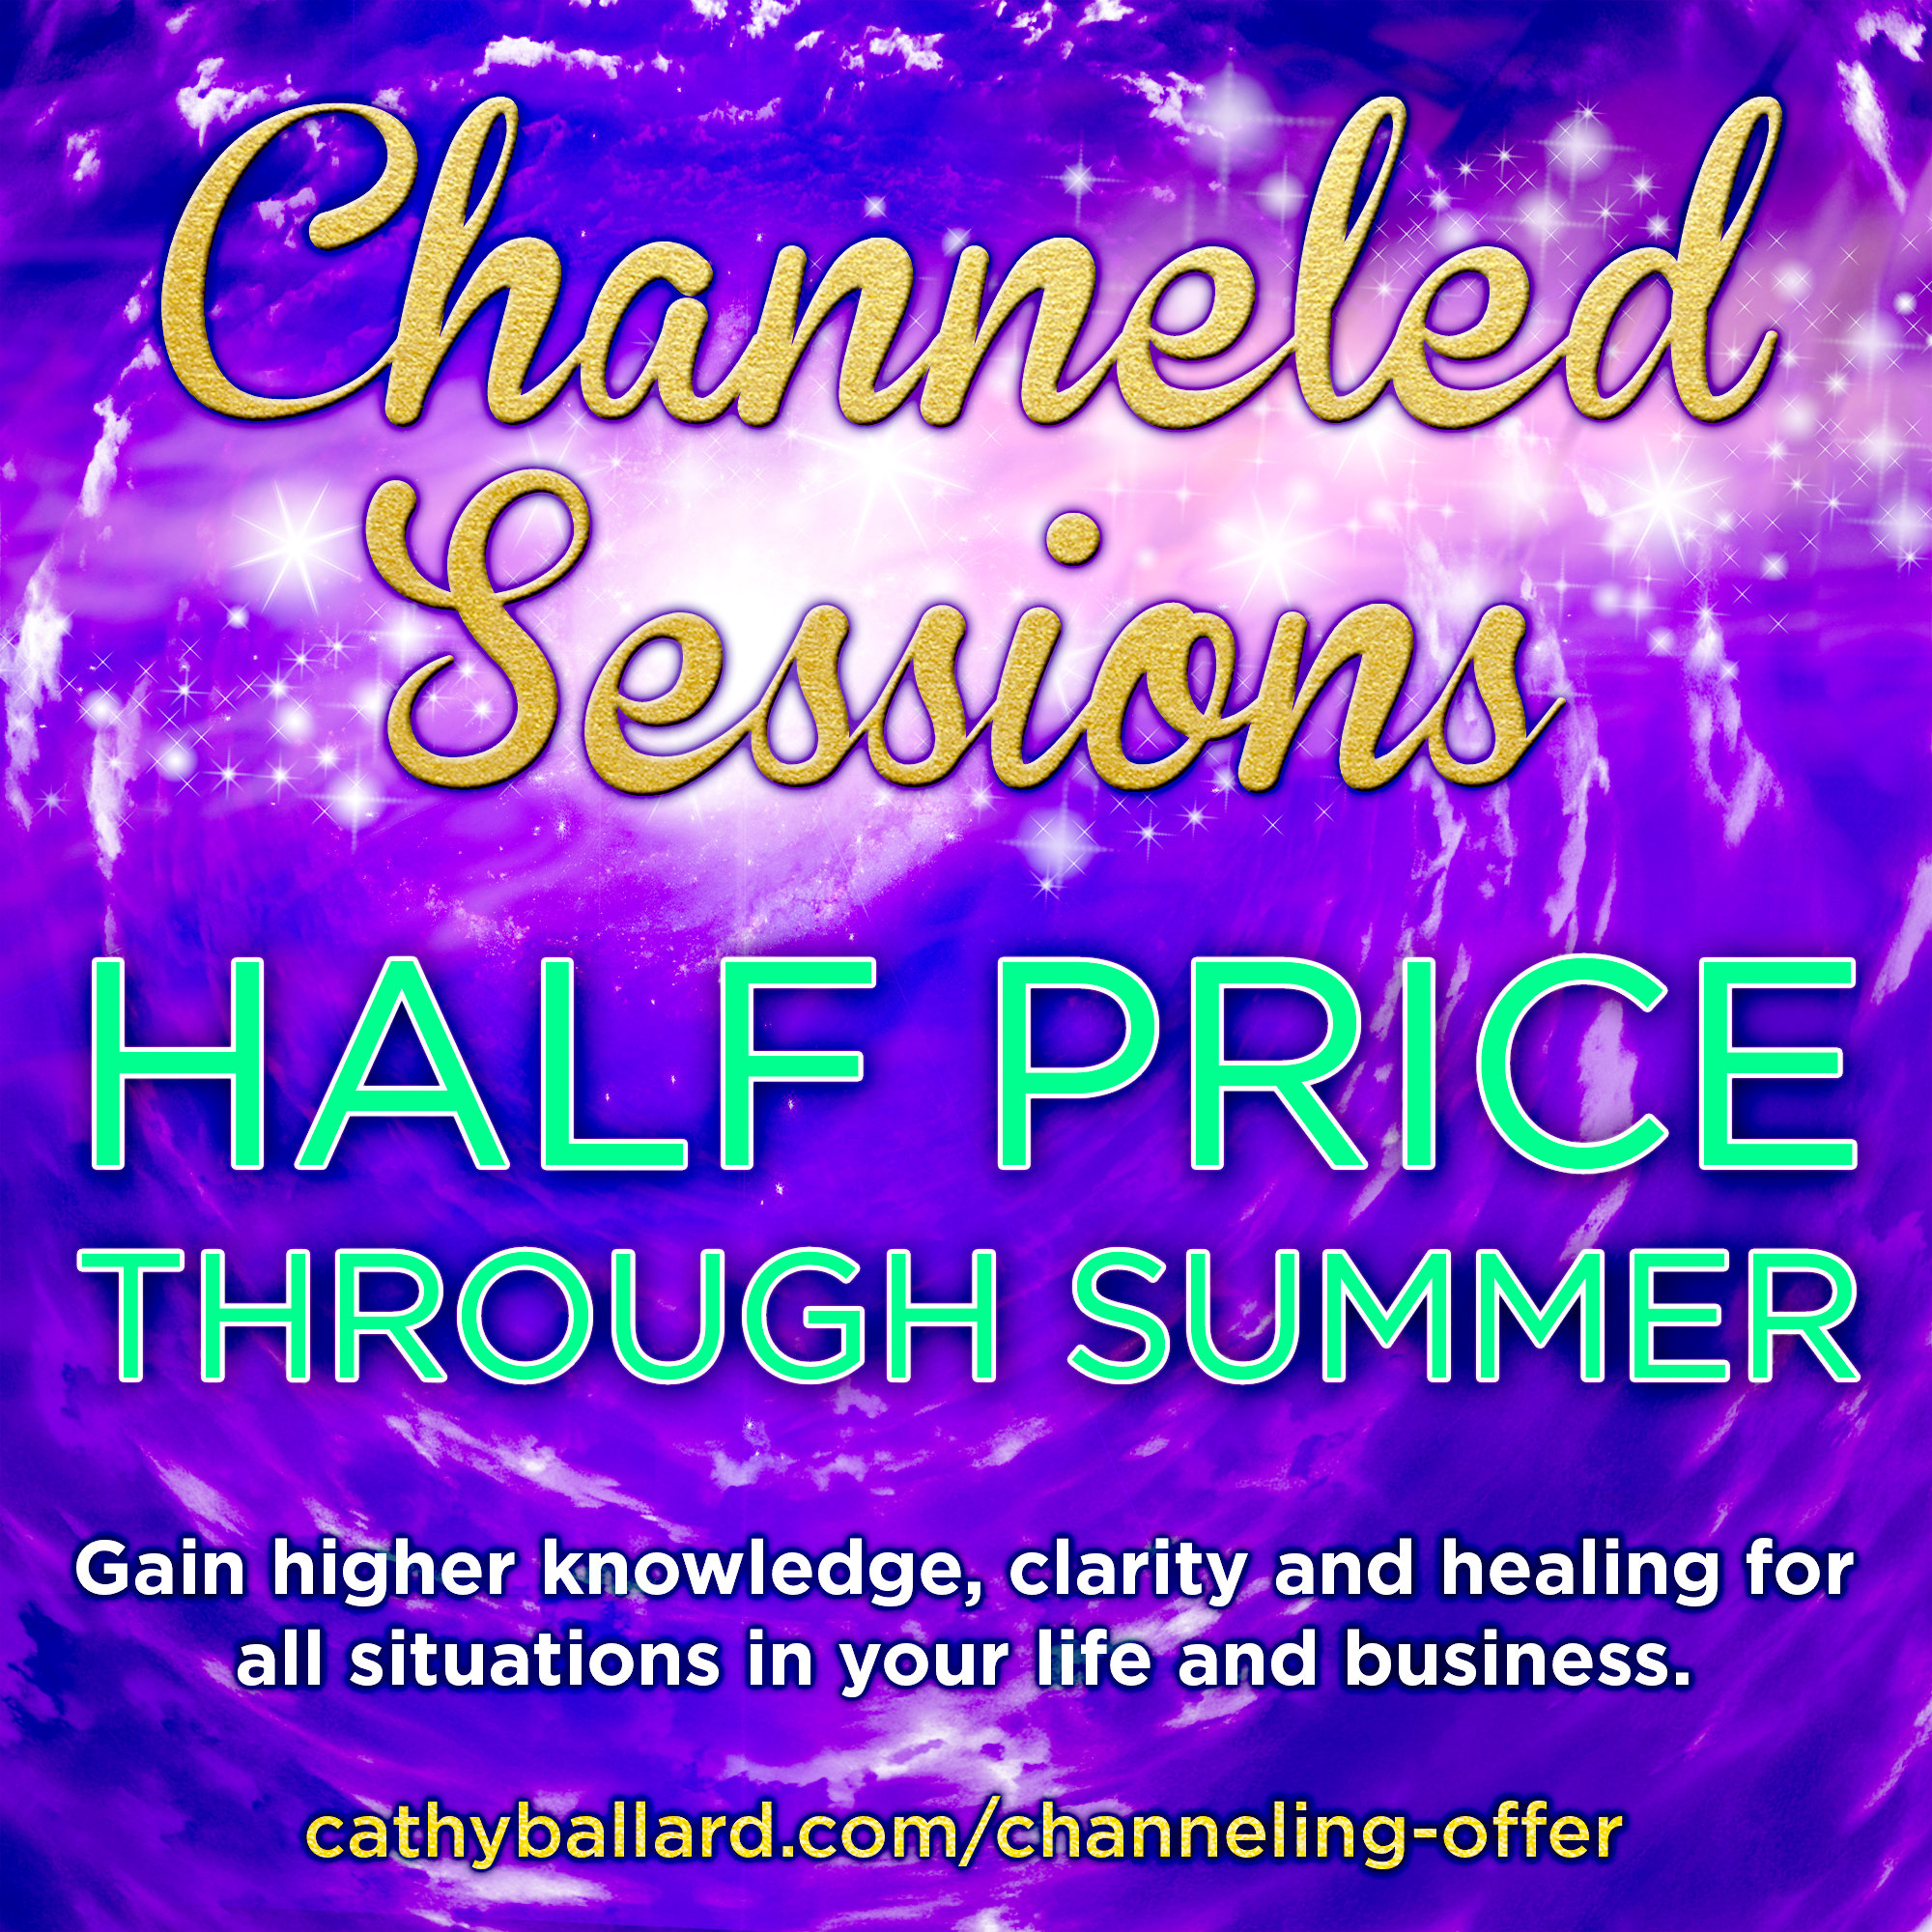 Channeled sessions half price through summer